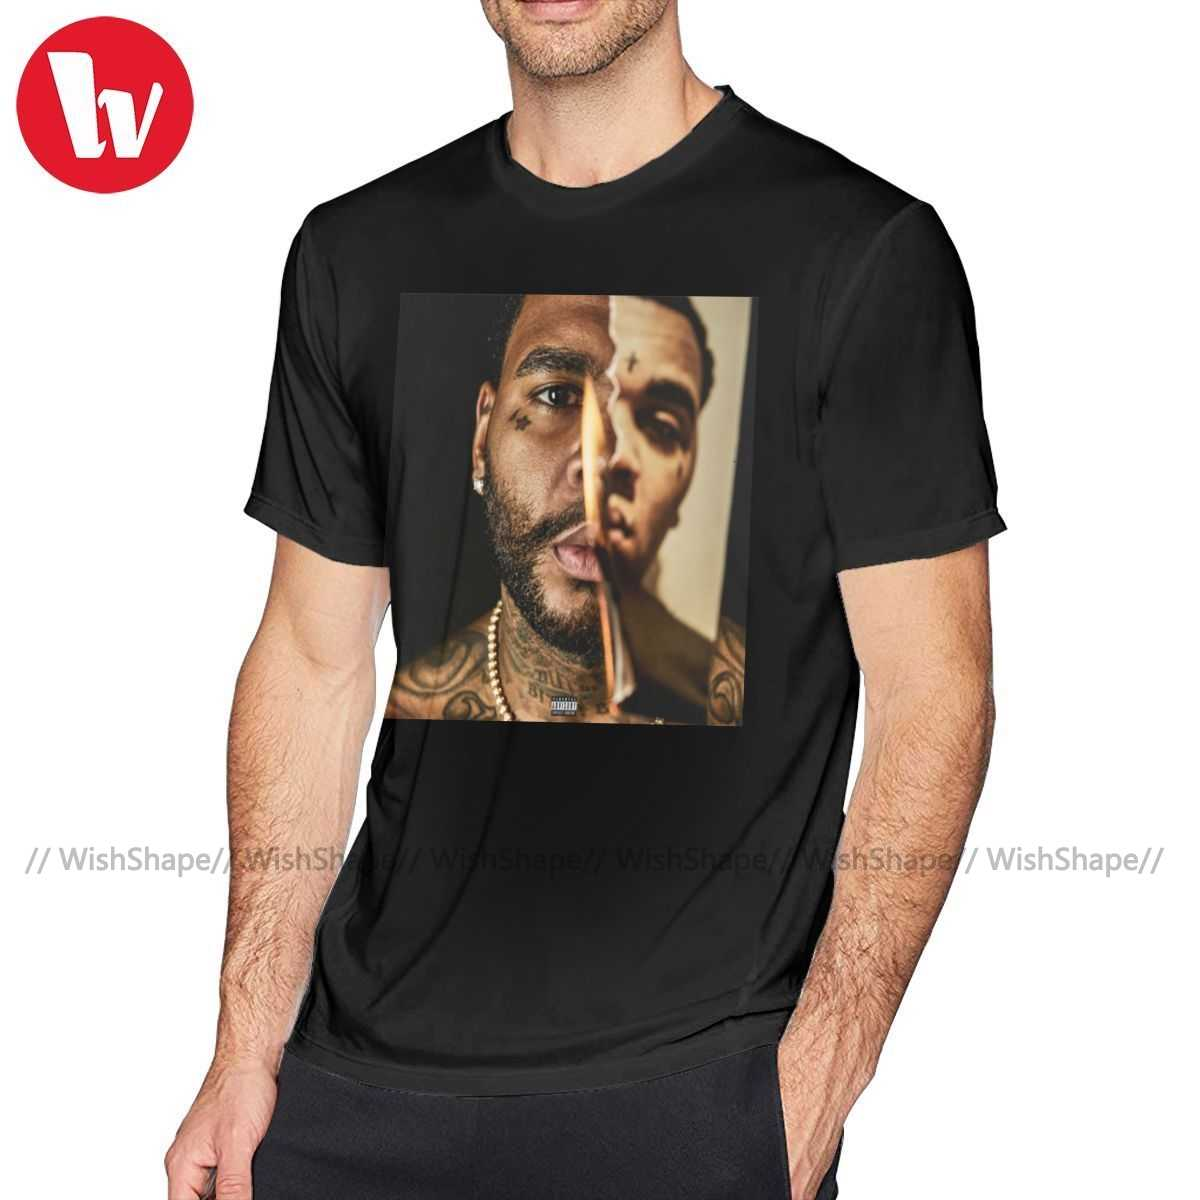 Kevin Gates T Shirt I am Lui T-Shirt 6xl di Base Tee Shirt Mens Short-Sleeve Stampato Divertente 100 Cotone tshirt